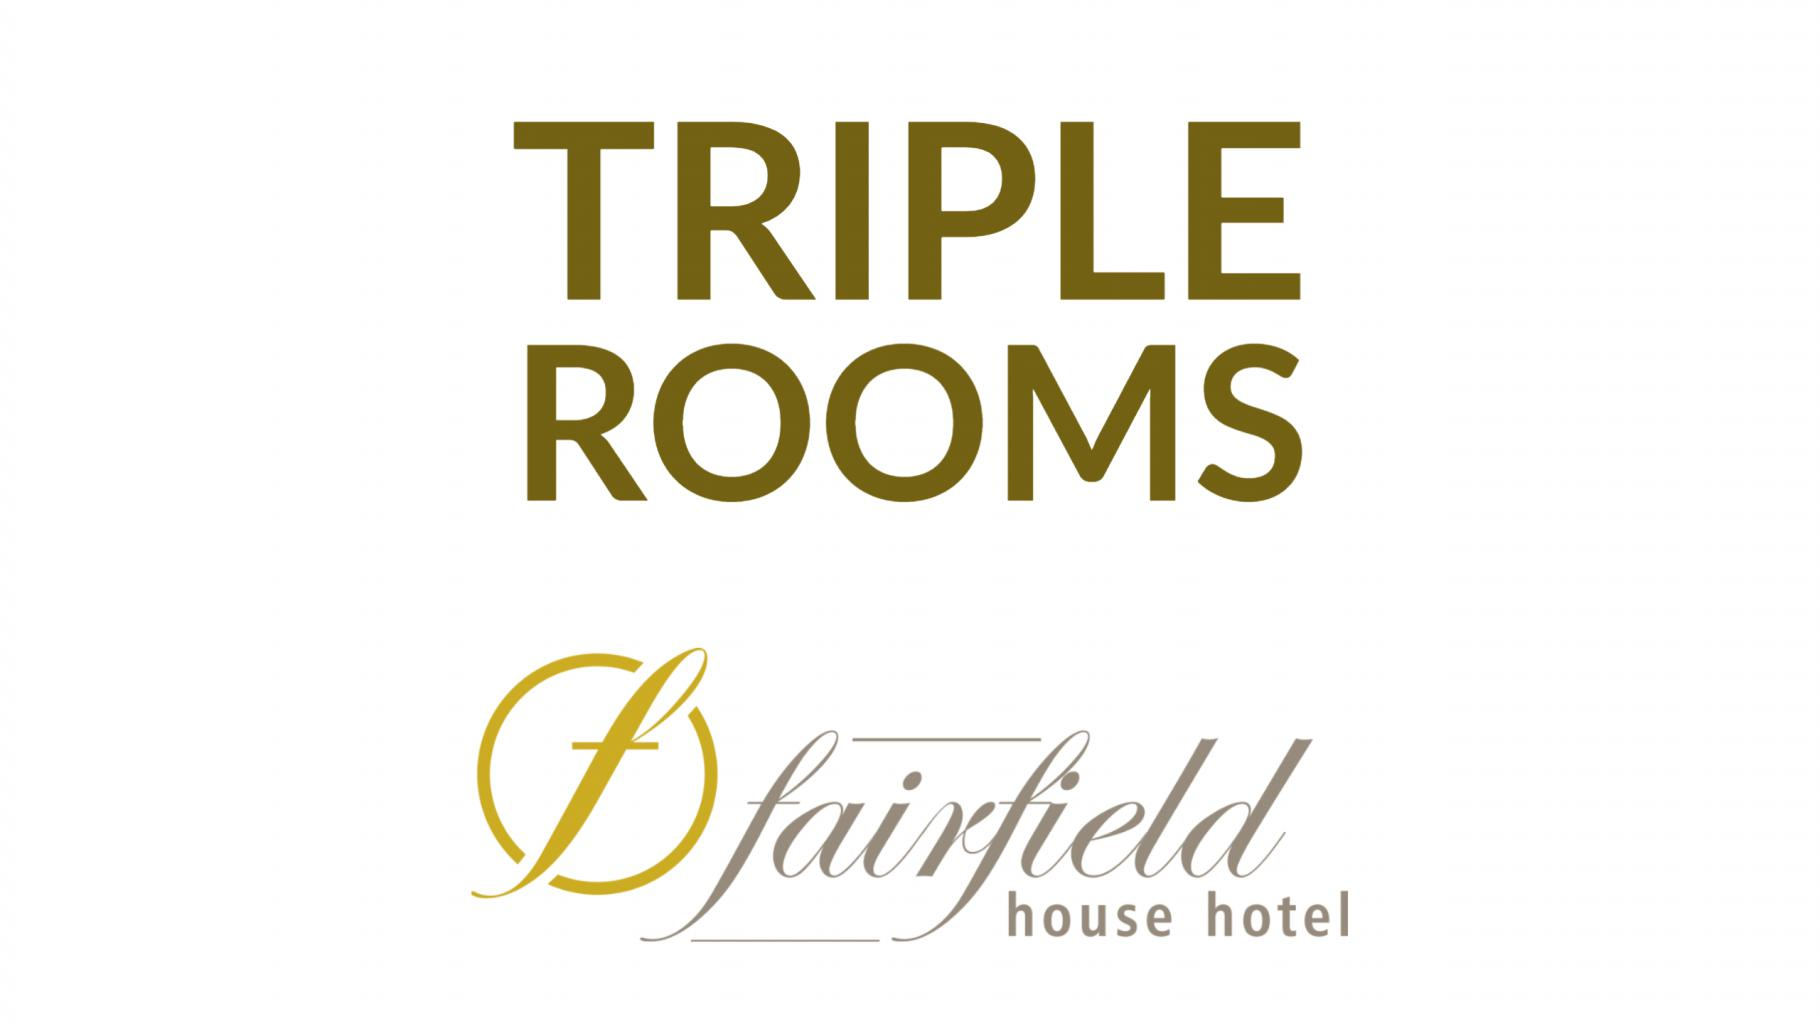 Each Triple room offers three beds in large modern and stylish rooms with ample desk space and free wireless connection ensuring you remain connected.